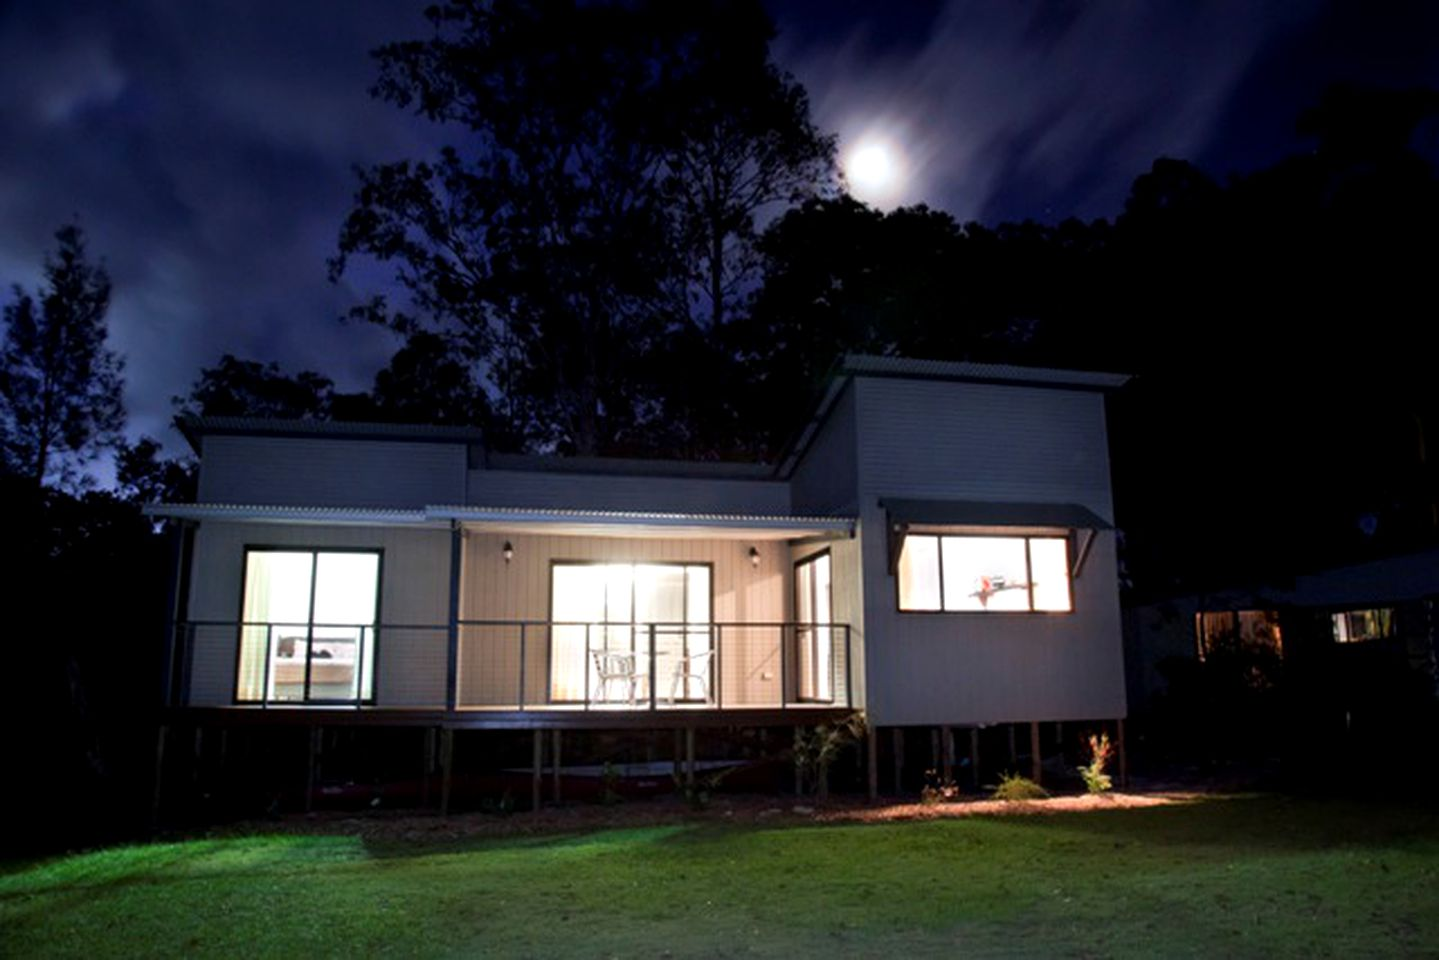 Cabins (Coffs Harbour, New South Wales, Australia)